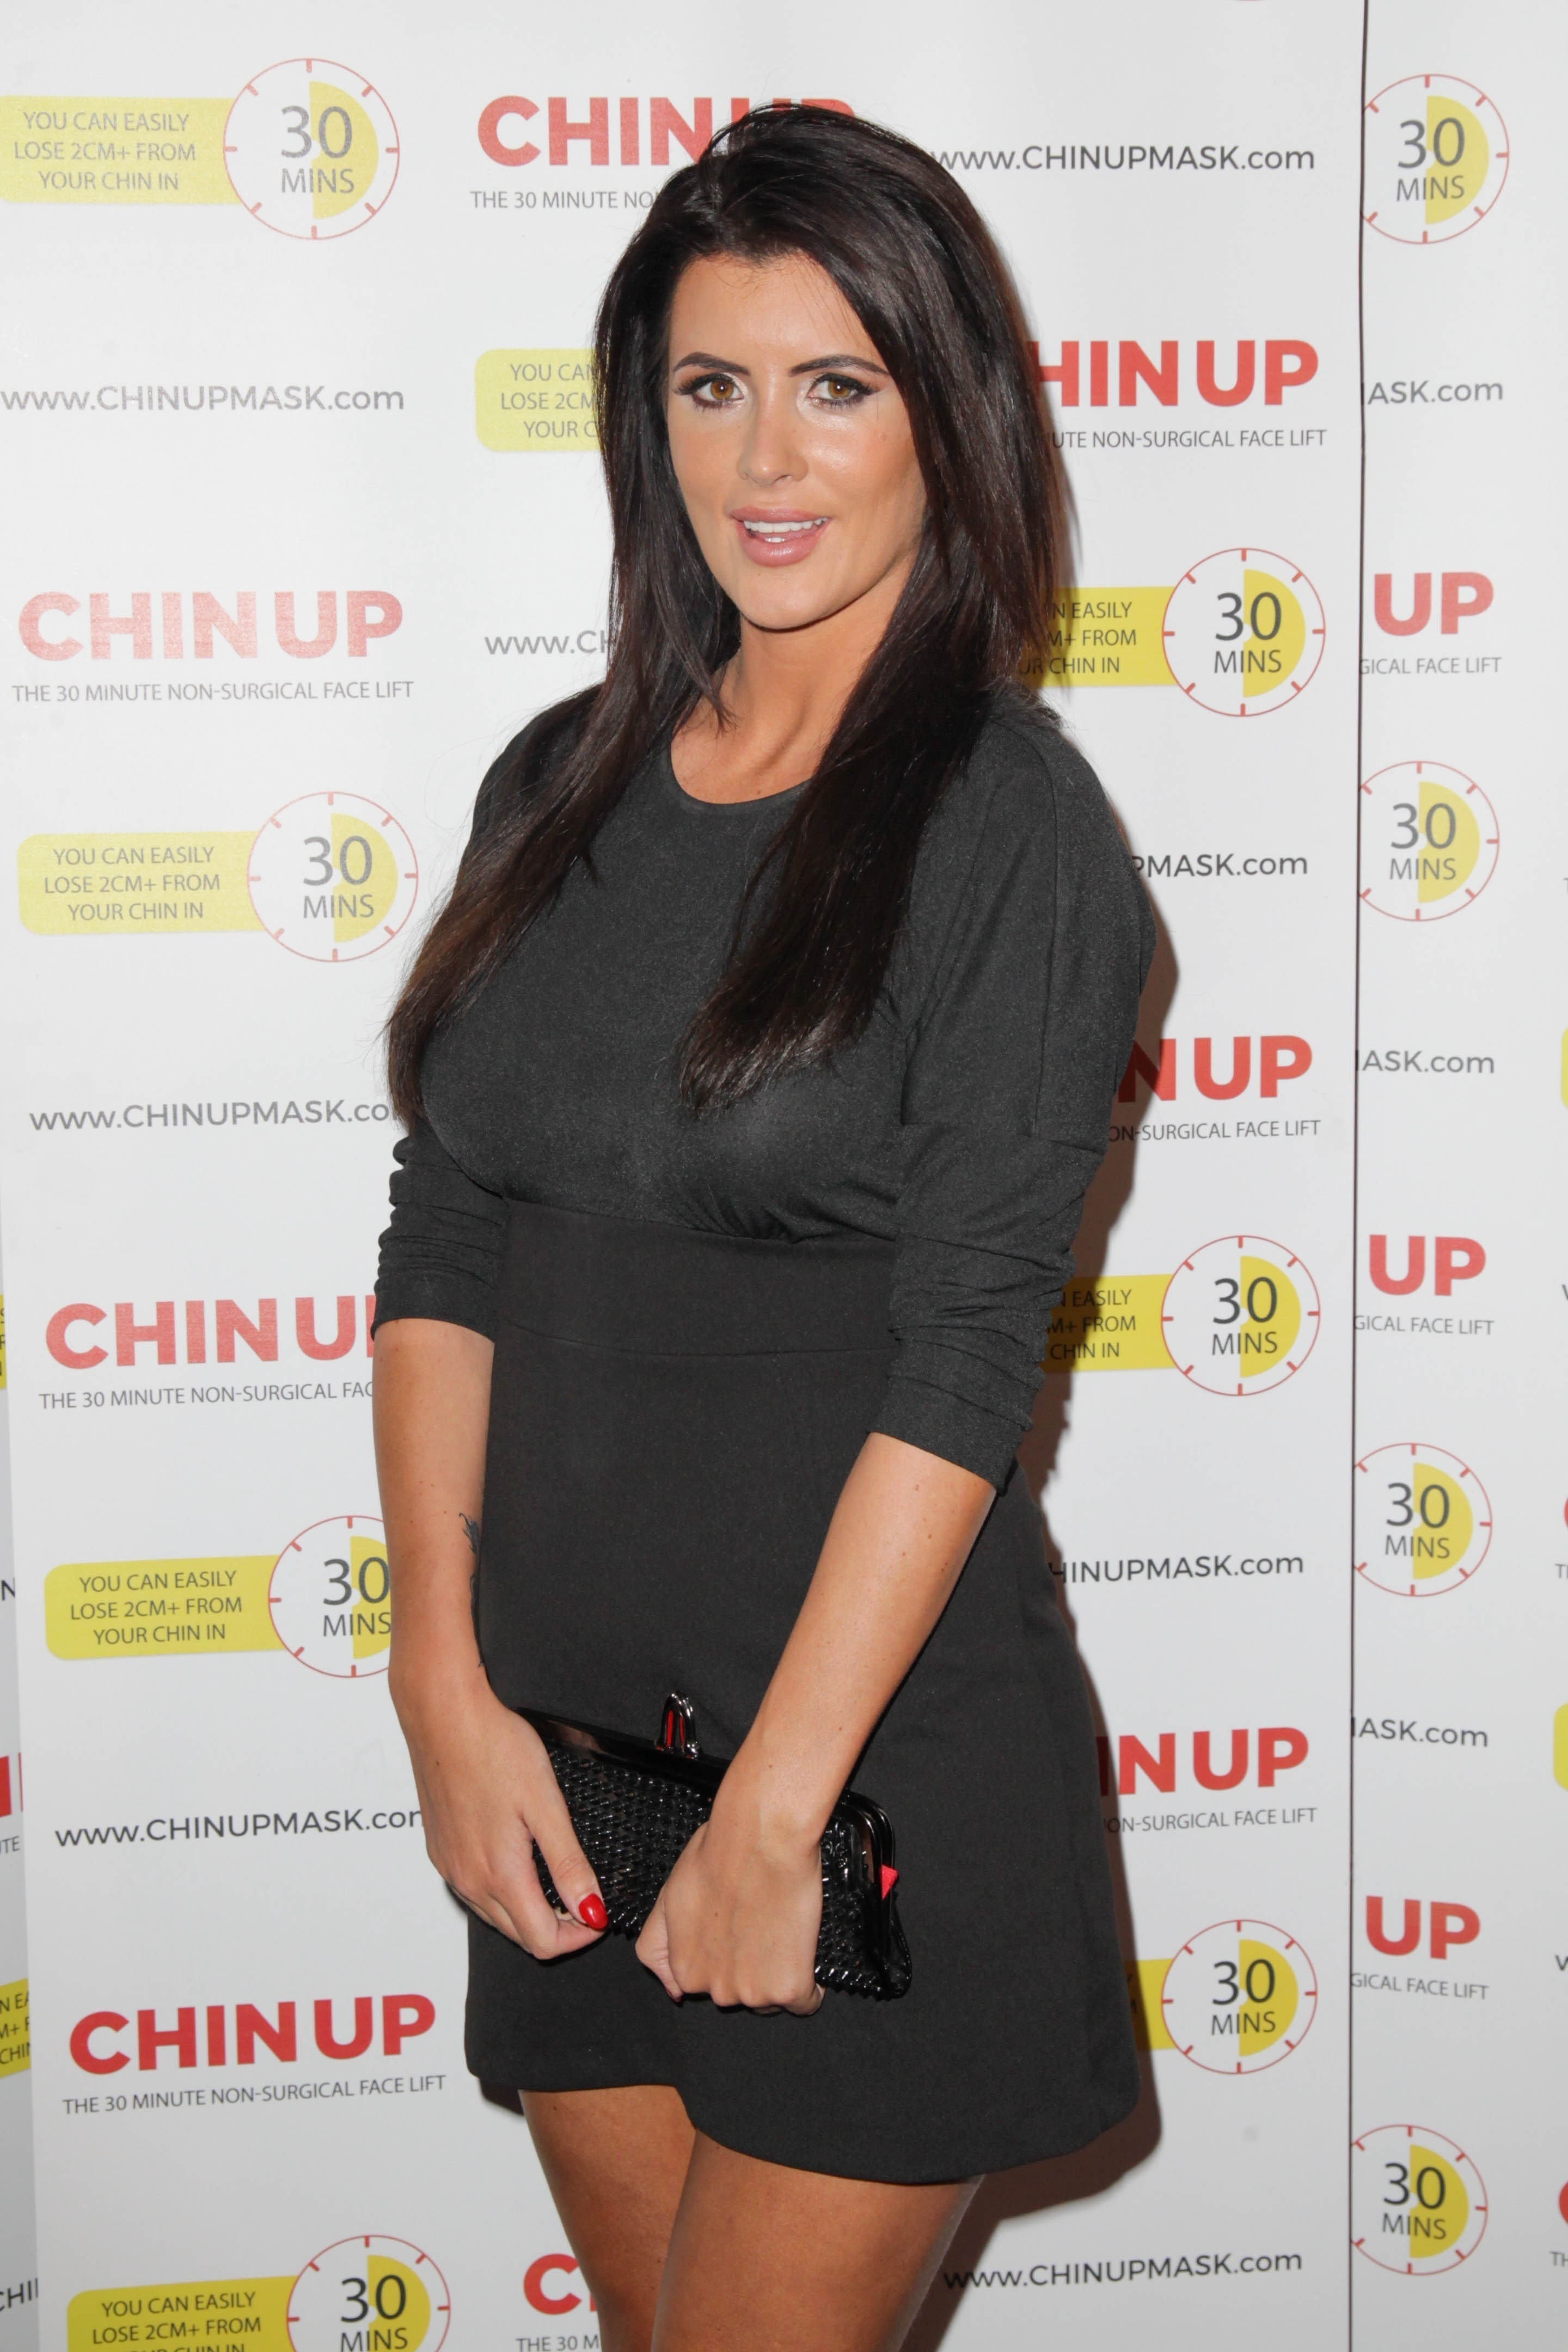 Picture Shows: Helen Wood September 16, 2015 Celebrities attend the new 30-minute non-surgical face lift VIP launch held at Cinema Room, Sanctum Soho Hotel in London, UK. Stars were treated to an exclusive preview launch for 'Chin Up,' a new non surgical face lift product. Non Exclusive WORLDWIDE RIGHTS Pictures by : FameFlynet UK © 2015 Tel : +44 (0)20 3551 5049 Email : info@fameflynet.uk.com